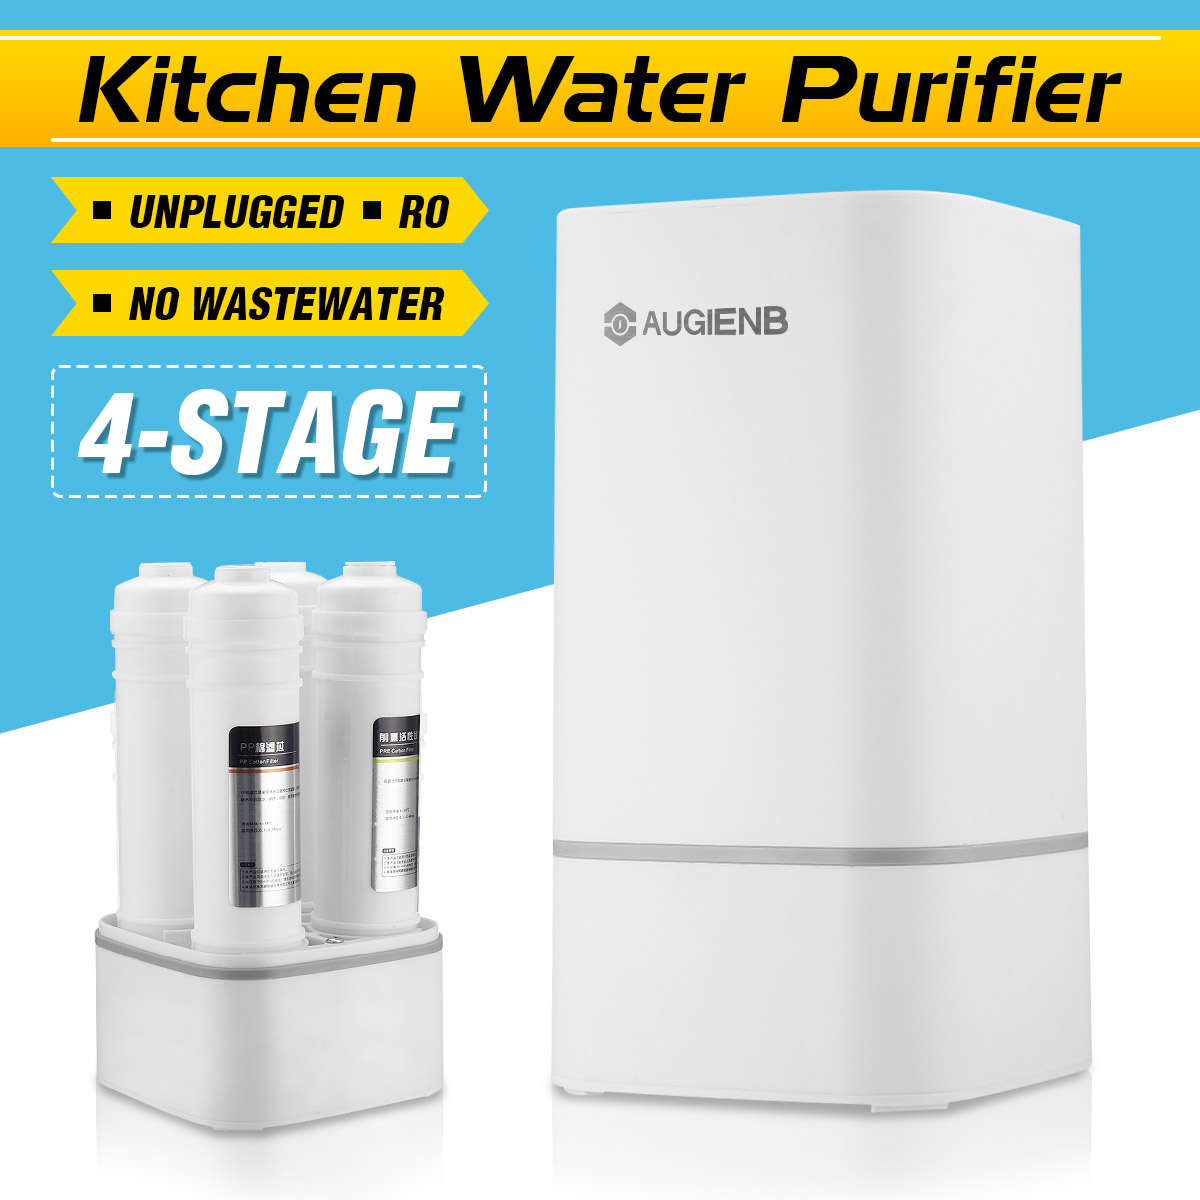 Countertop Reverse Osmosis Water Filtration System  4 Stage RO Water Filter  Simple Set Up Faucet Filter  Express Water-White